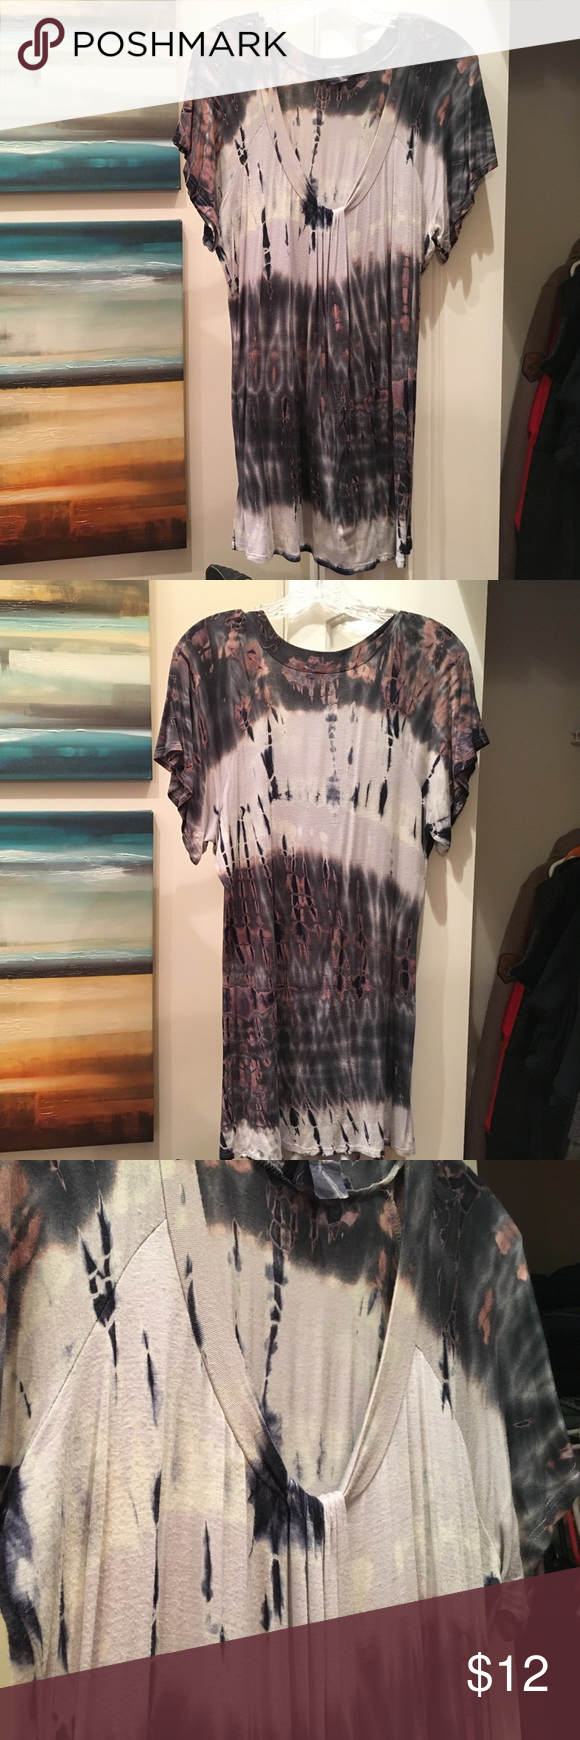 Daytrip Tie-Dye Shirt - XL This is a Daytrip tie-dye shirt bought from Buckle. I believe the material is 96% Rayon and 4% Spandex. Kind of hard to tell because of the tie-dye process. Almost a v-neck top with a ruching piece at the lower portion of the v-neck. Daytrip Tops Tees - Short Sleeve